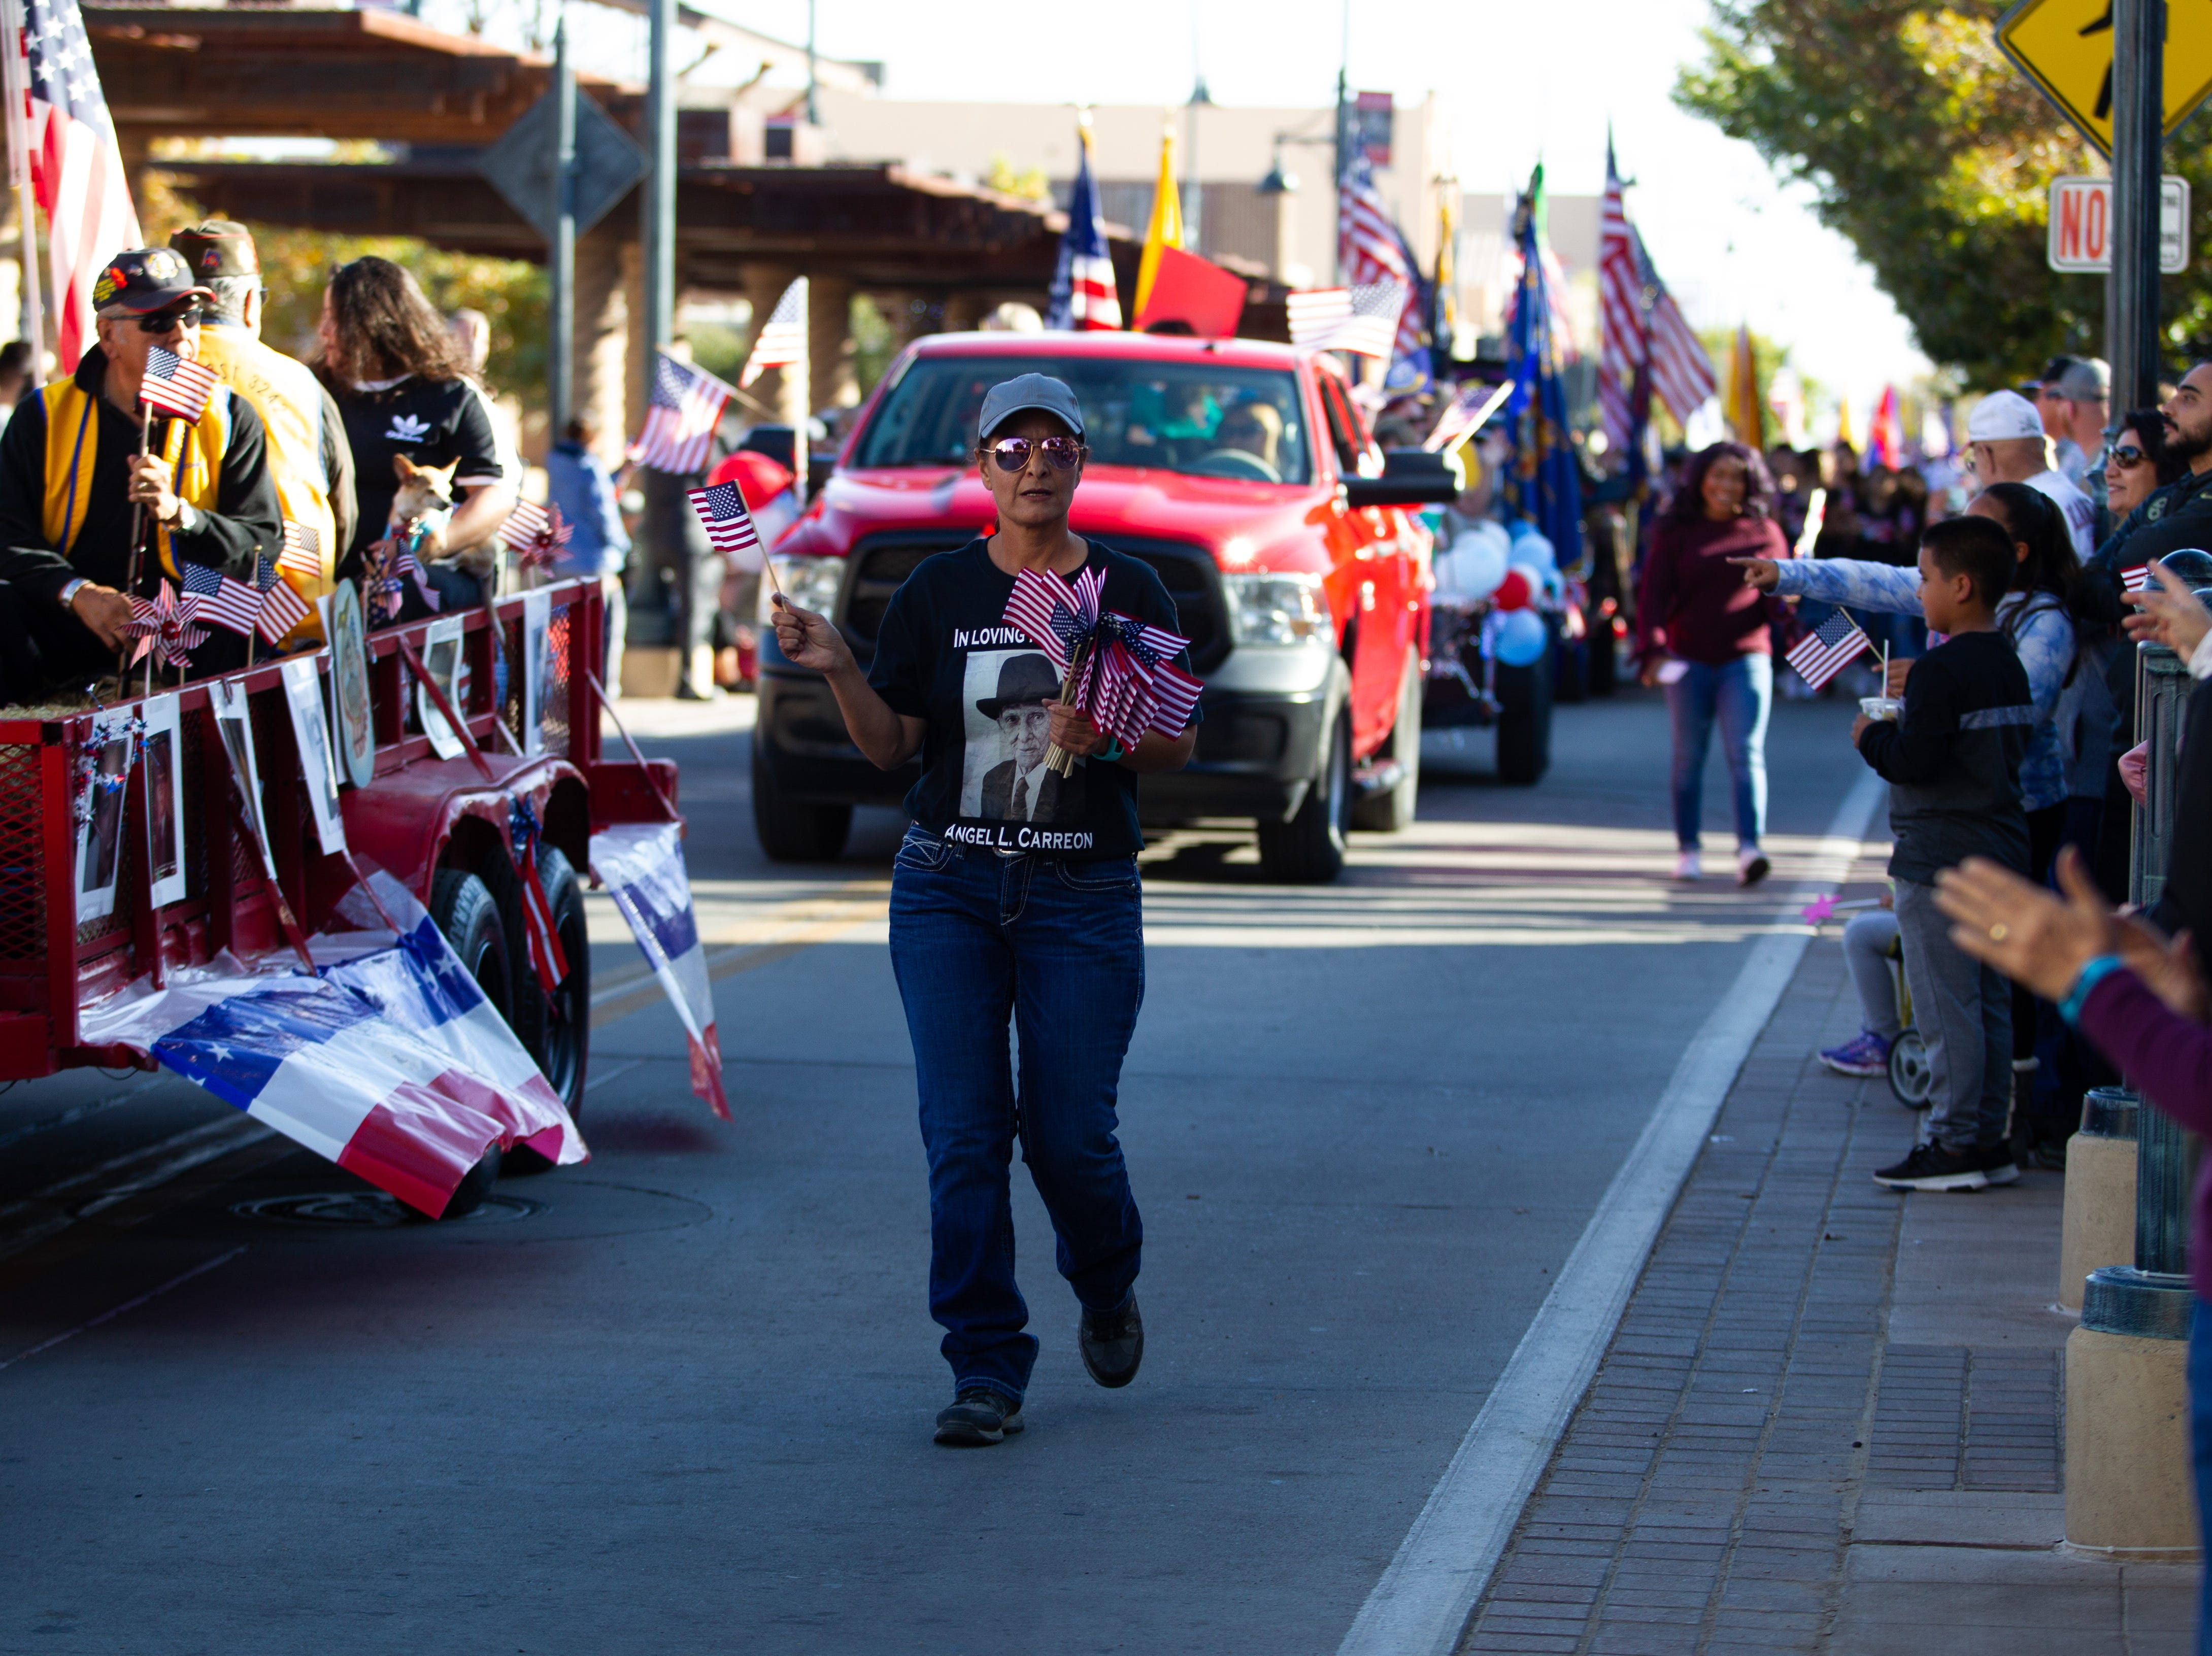 Virginia Carreon hands out US Flags to spectators during the Veterans Day Parade held on November 10, 2018.